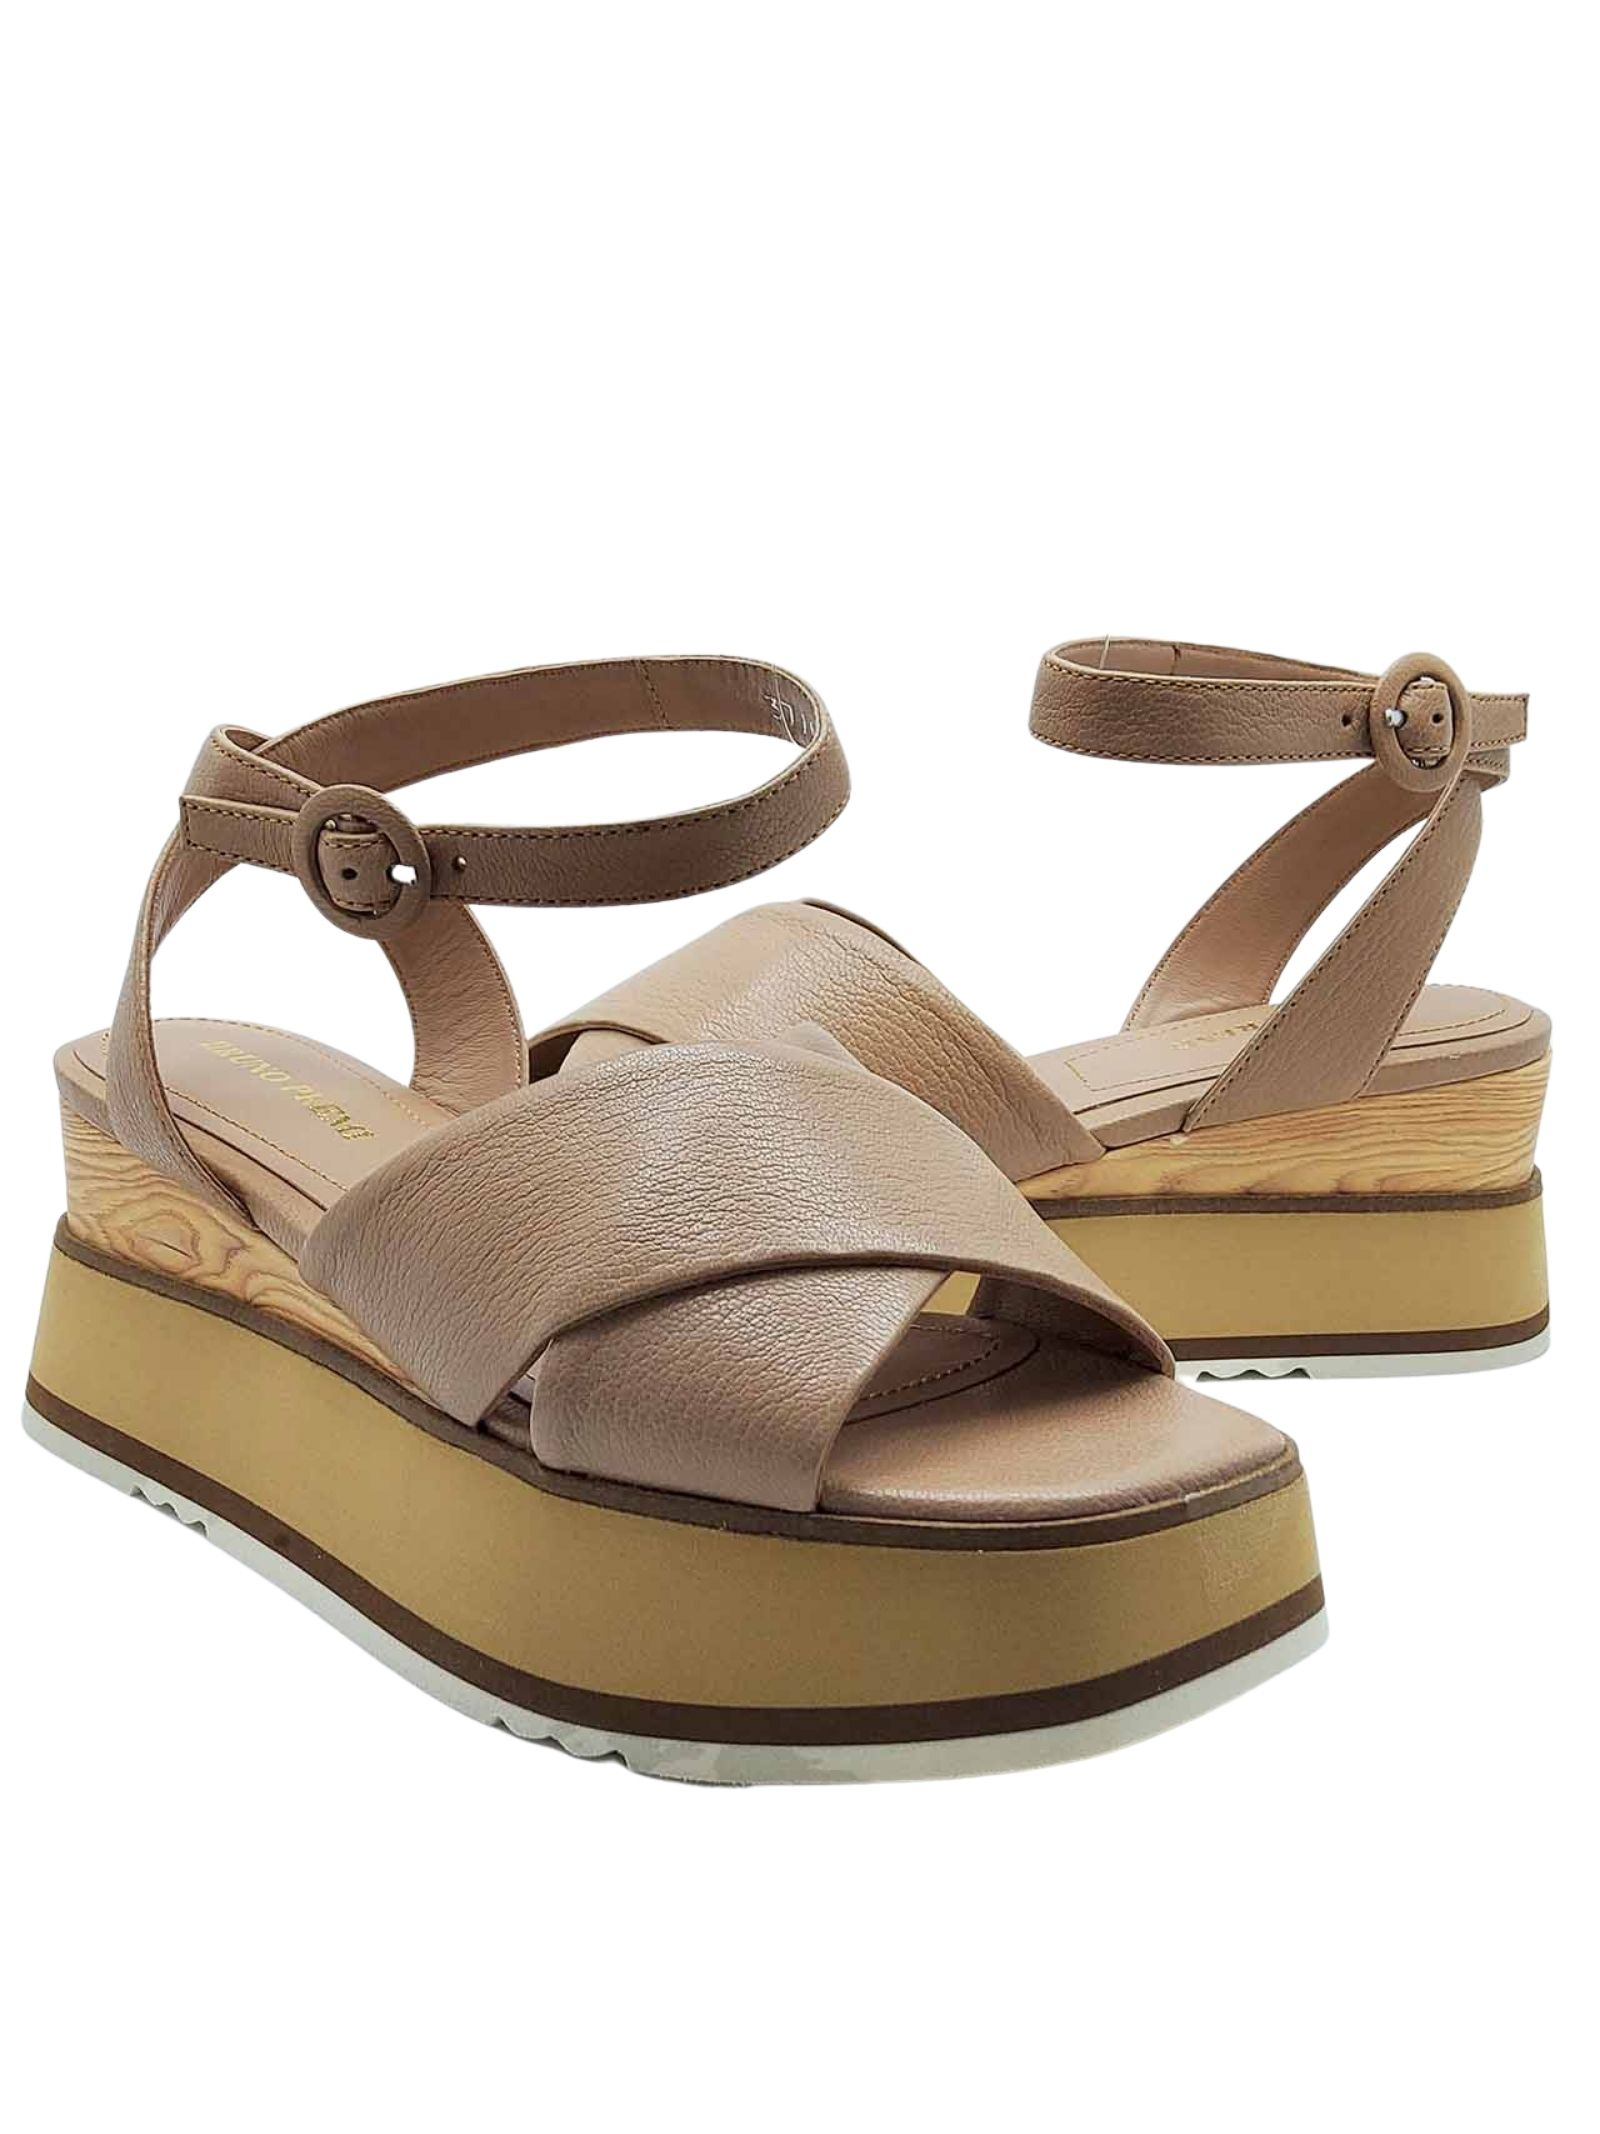 Women's Shoes Sandals in Nude Cross Leather with Ankle Strap and Wooden Wedge Bruno Premi   Wedge Sandals   BB2602X014